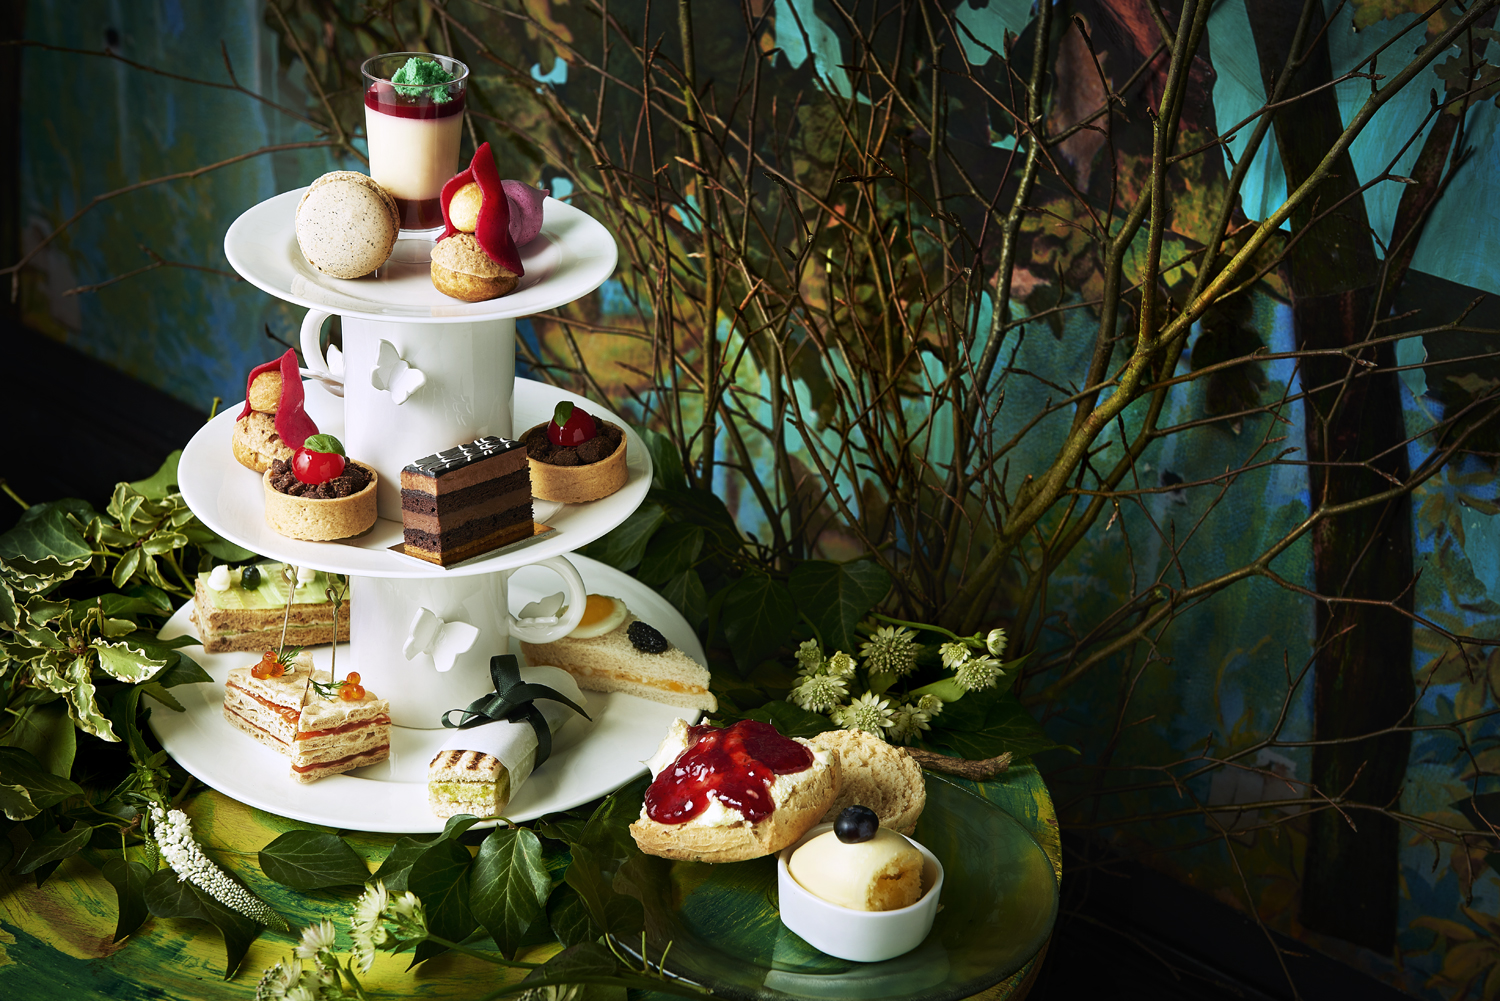 Food and drink photographer and tabletop director Scott Grummett based in London. Shooting Advertising, editorial, packaging, pr and more. Shown here is food photography from food photographer and director Scott Grummett of Sketch afternoon tea table cakes scene champagne scones jam cream